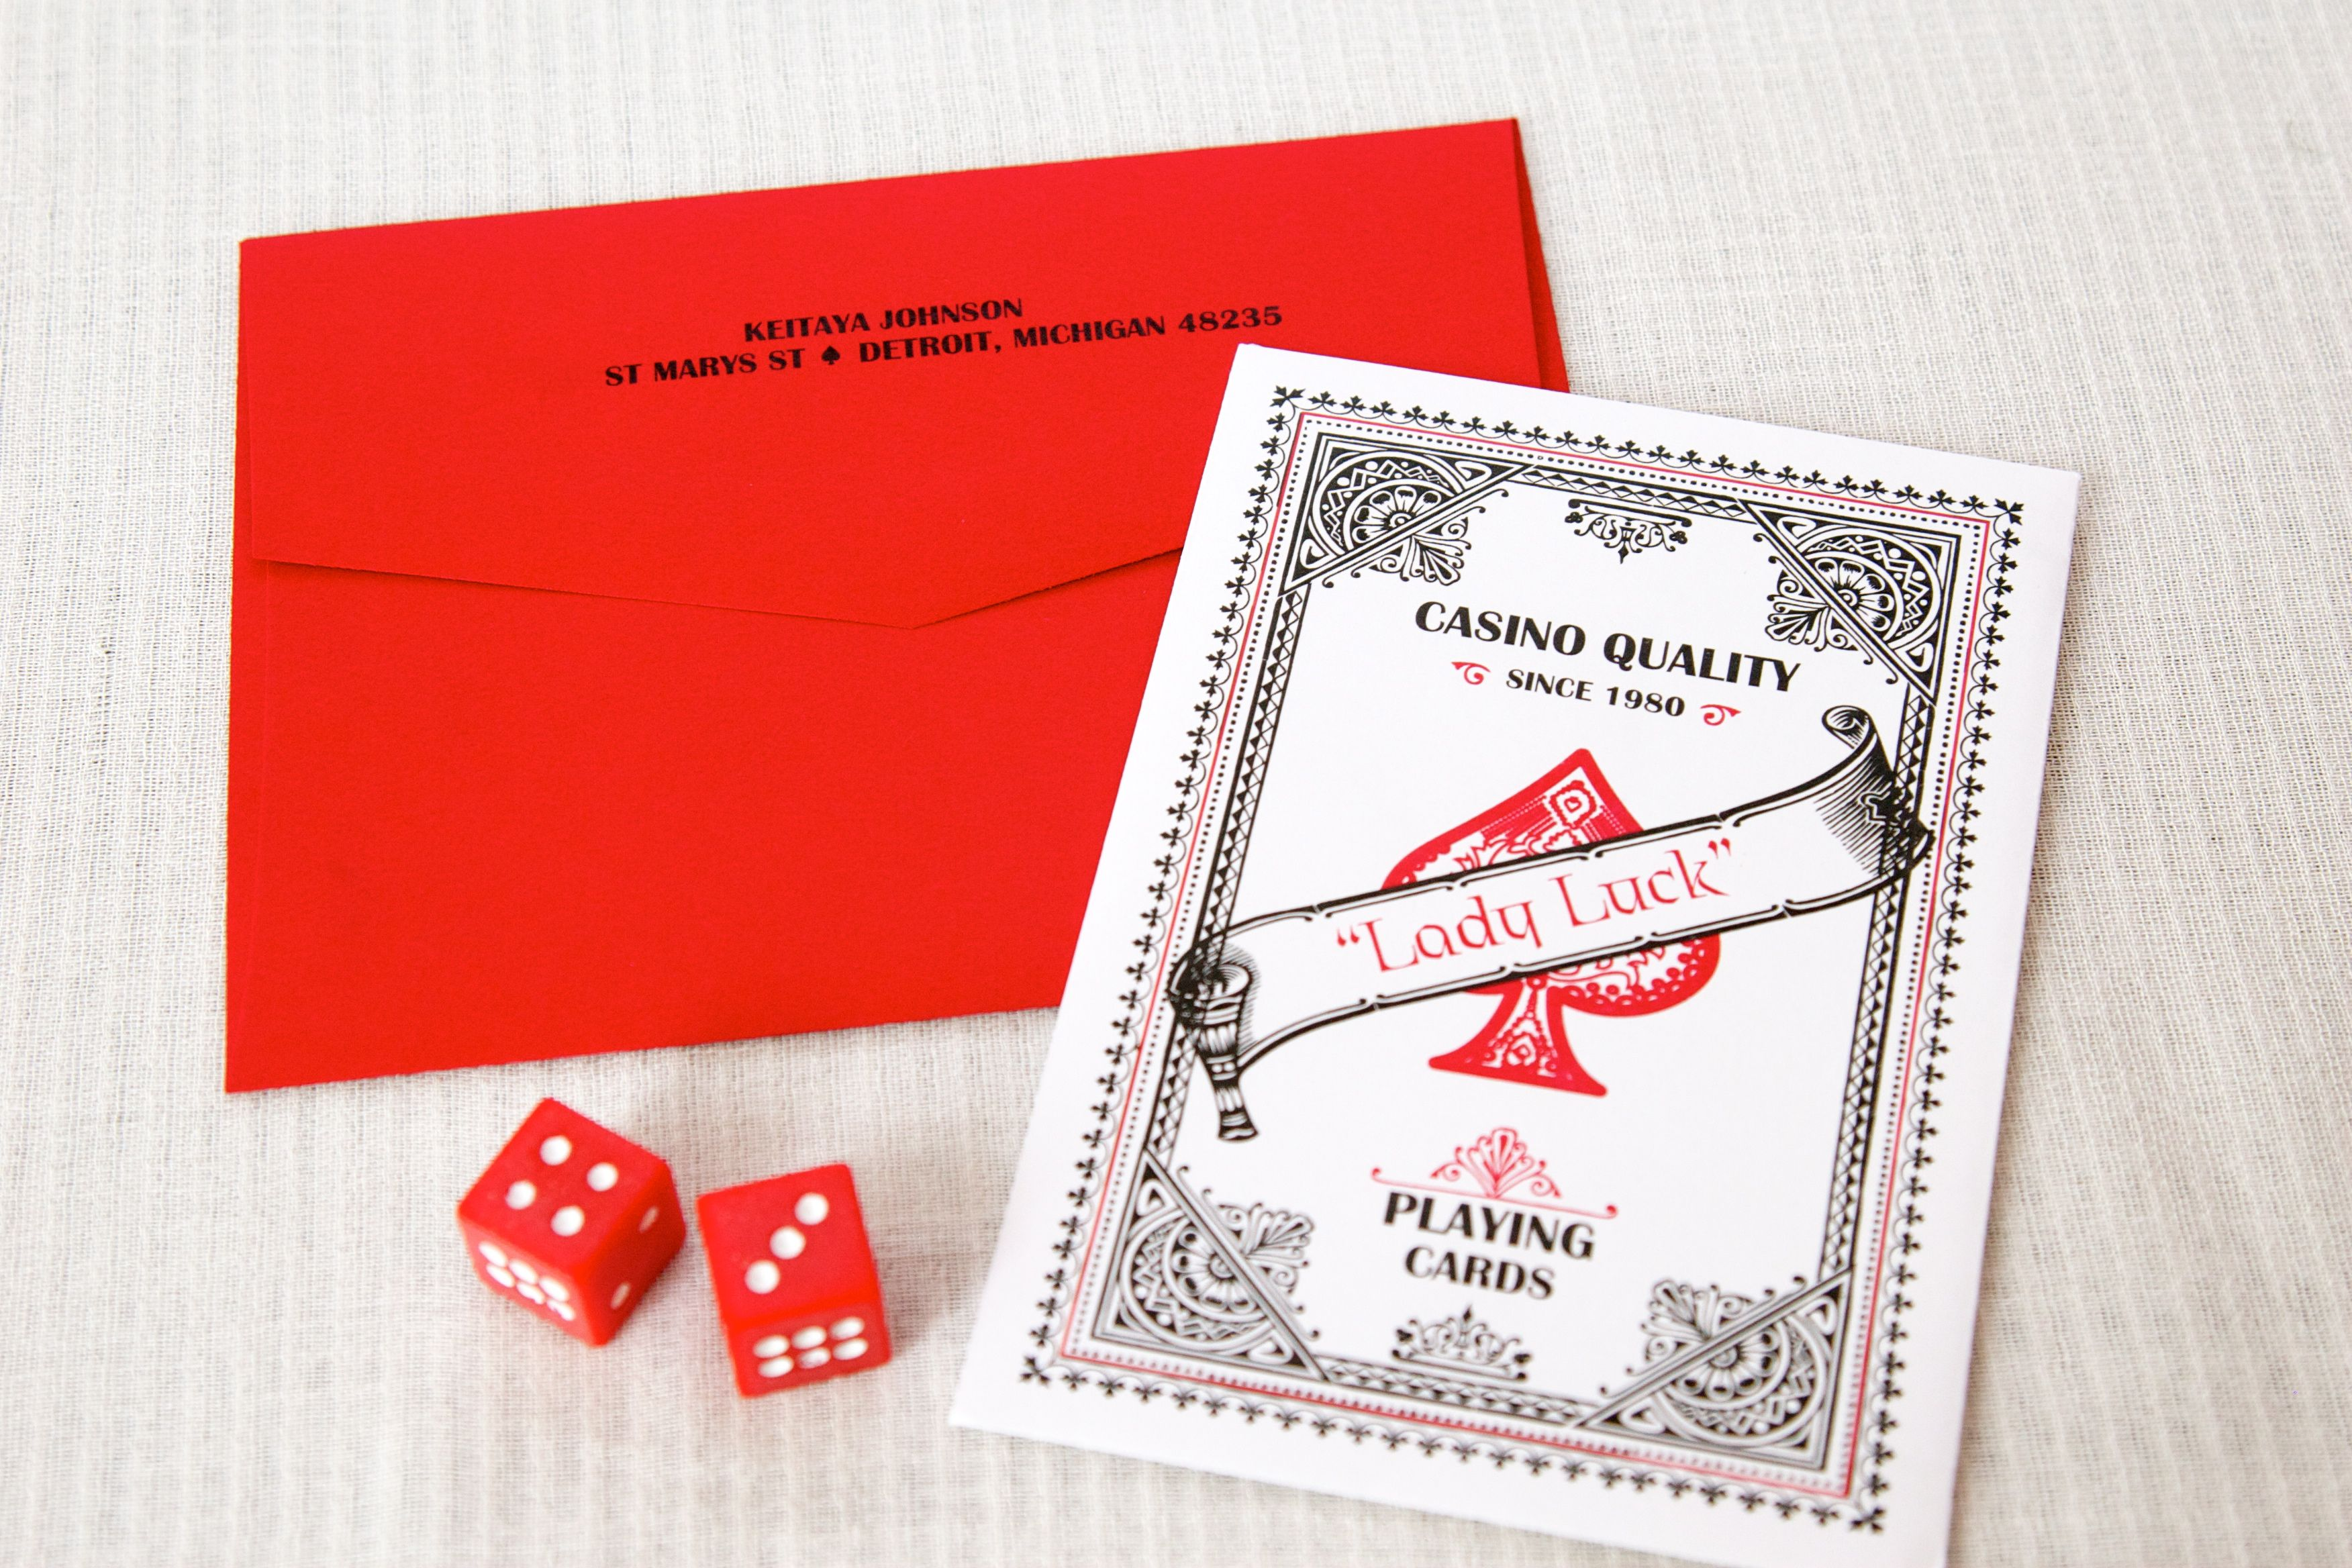 Photo Card Invites greeting cards online – Playing Card Party Invitations